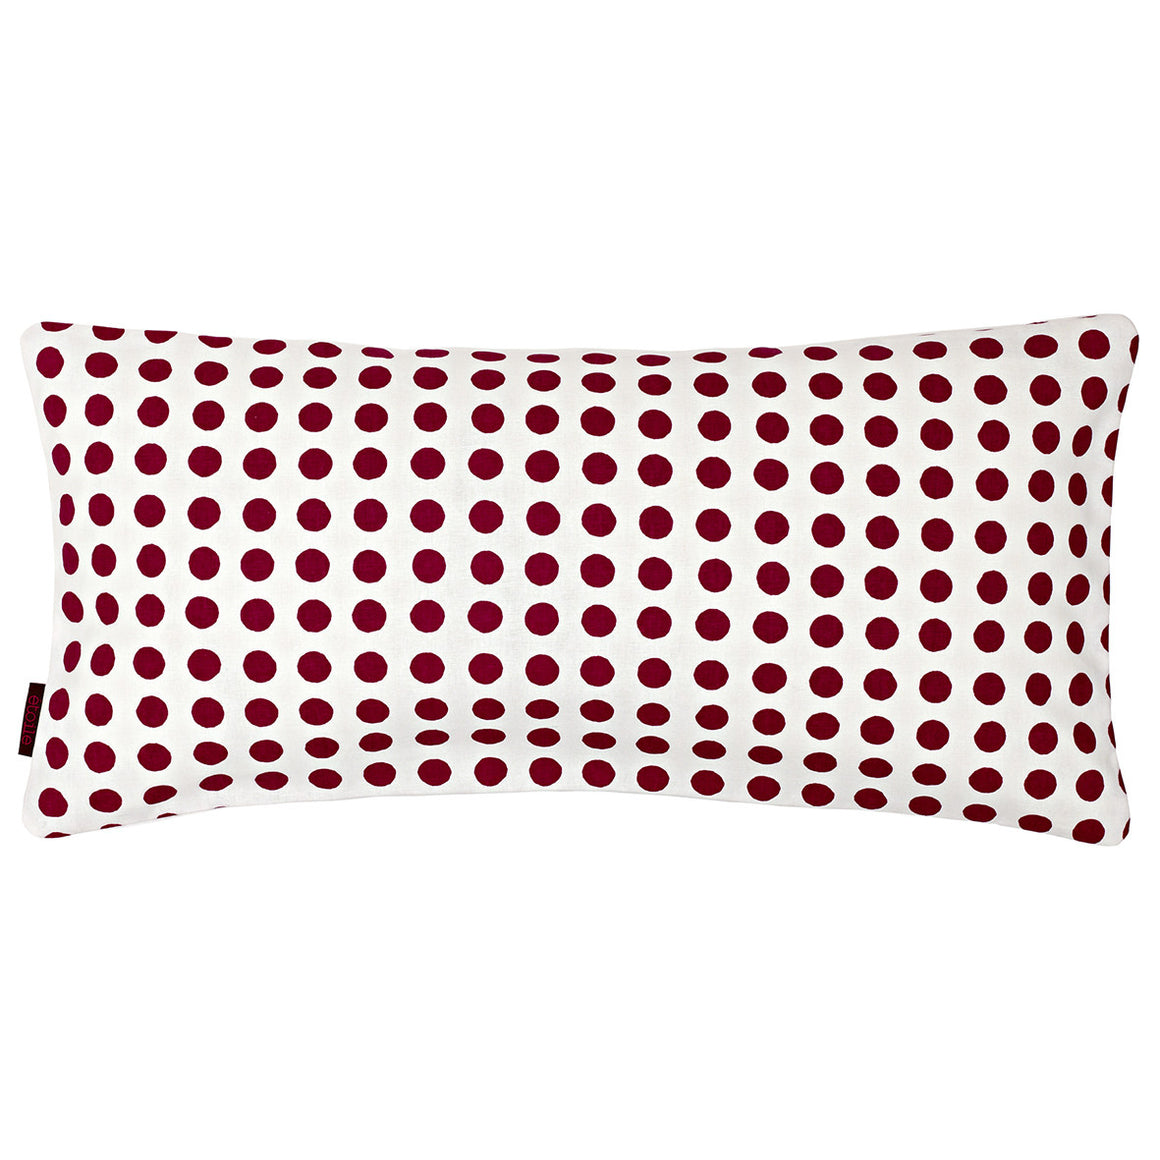 London Polka Dot Pattern Linen Cotton Rectangle Cushion - Vermilion Red 30x60cm